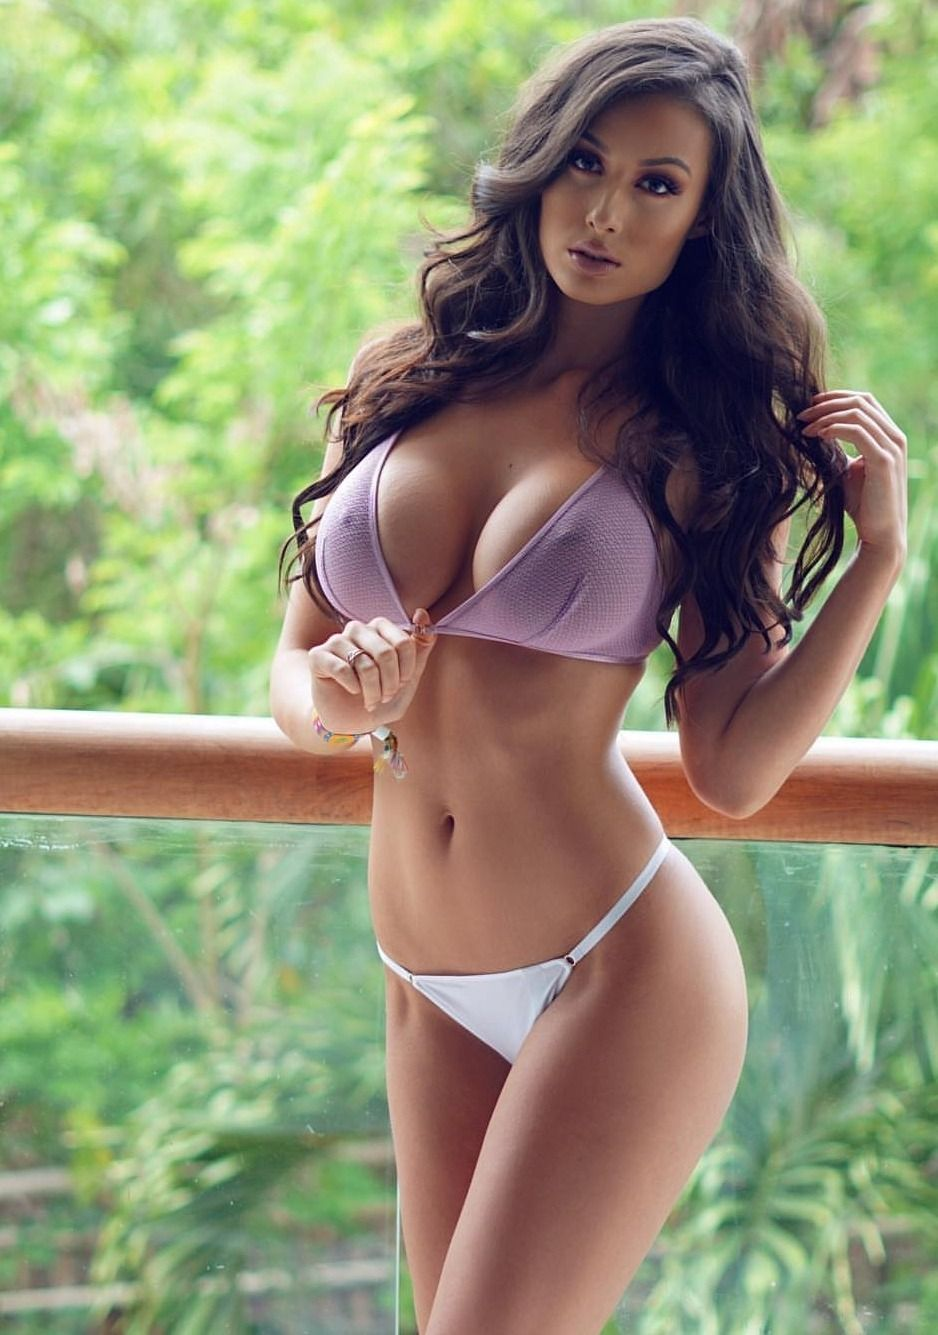 cleavage Images Bianca Kmiec naked photo 2017